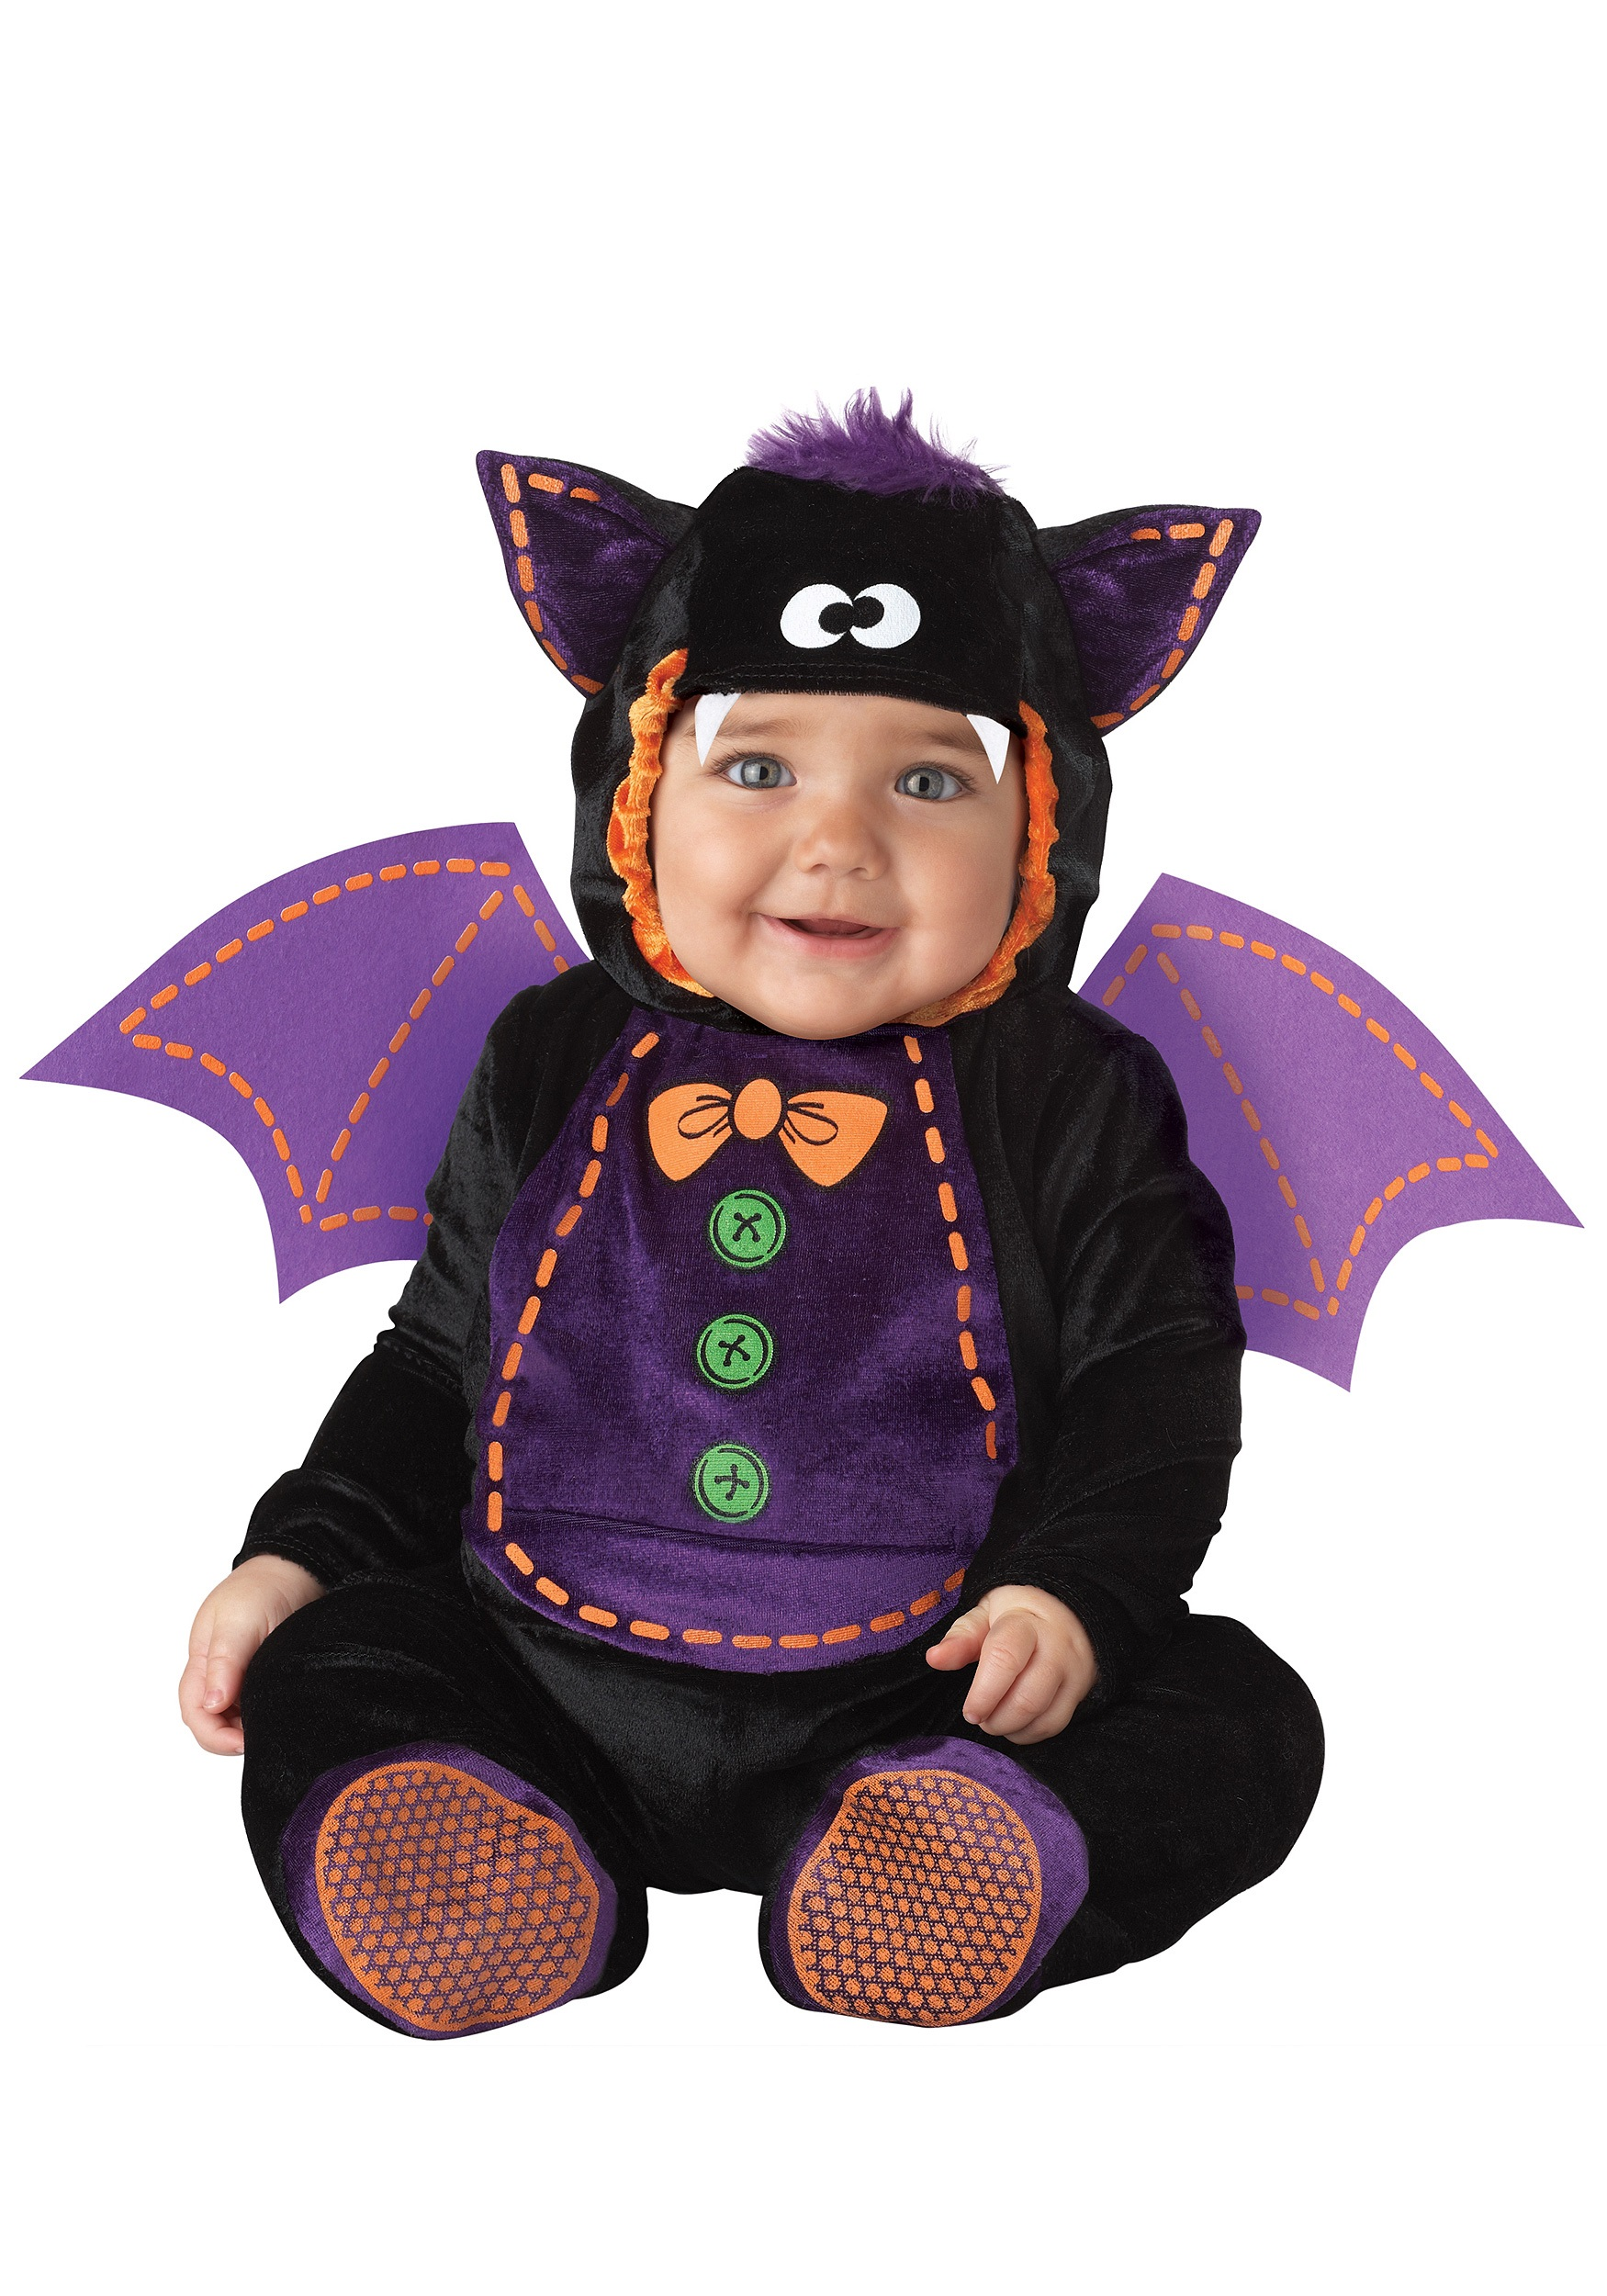 Infant Bat Costume  sc 1 st  Halloween Costumes & Infant Bat Costume - Halloween Costumes